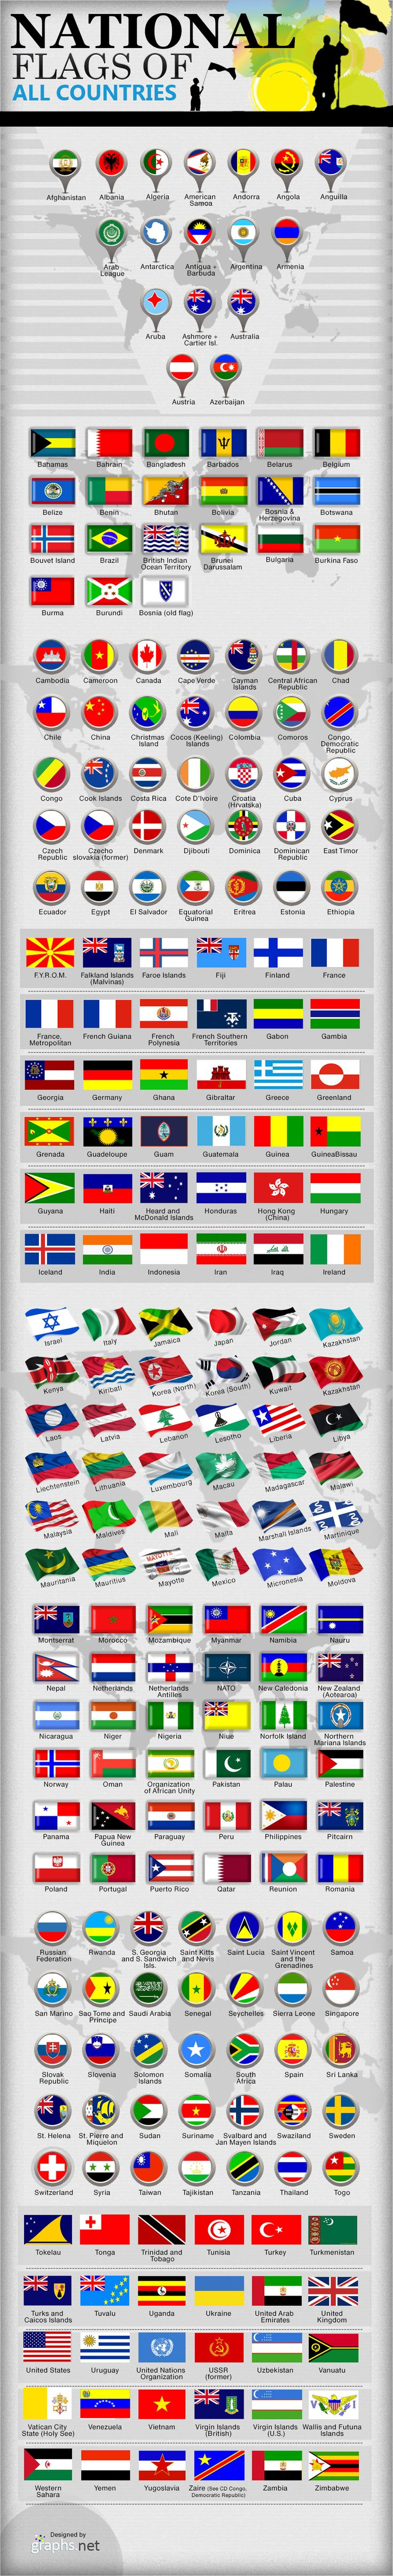 National Flags of all Countries  #flags #national #countries #India #australia